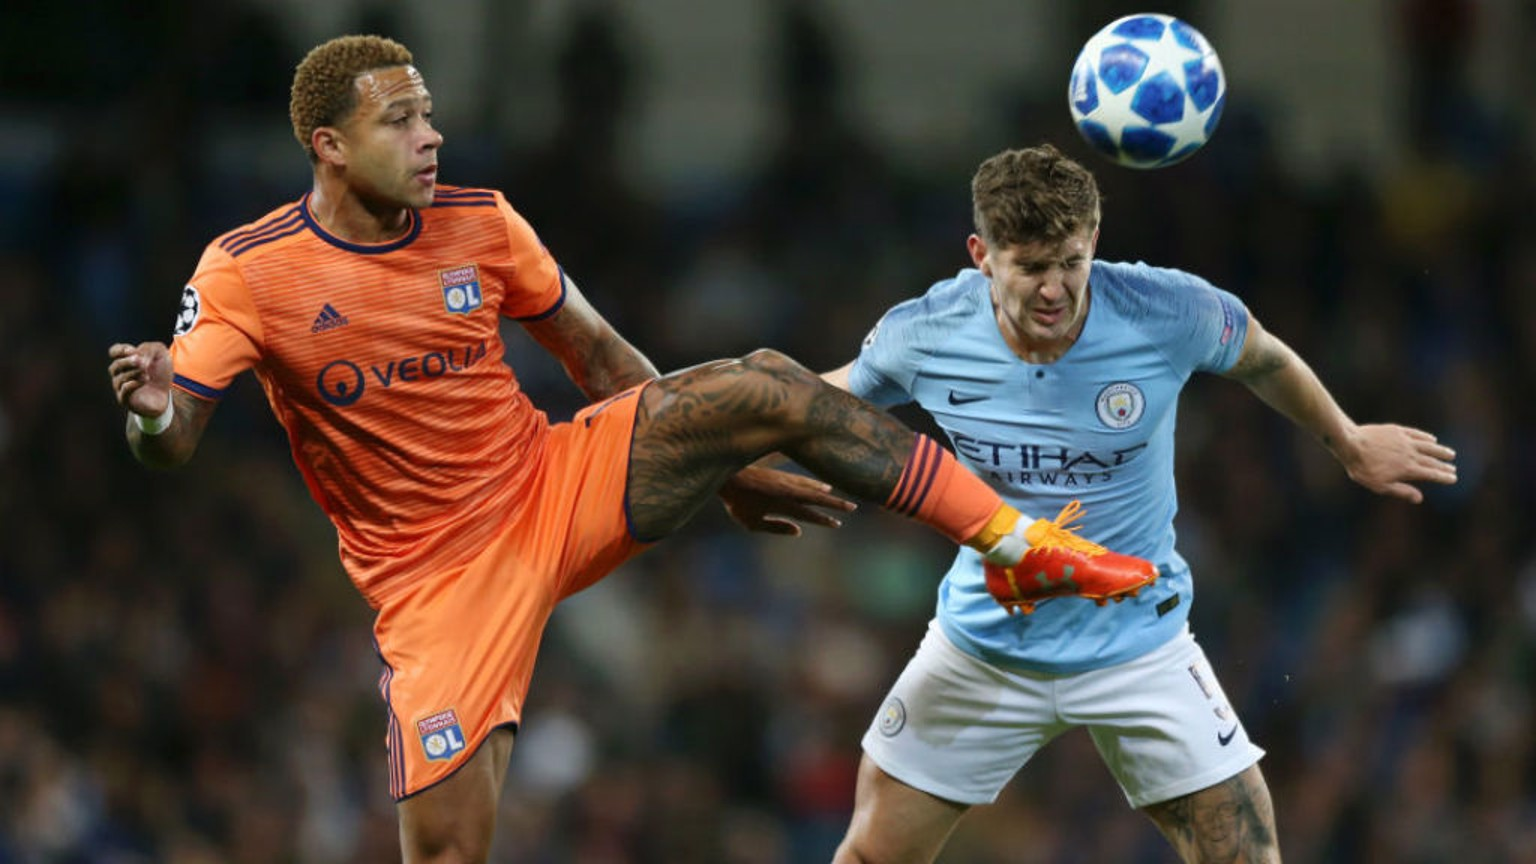 SHUT EYE: John Stones beats Memphis Depay to head clear